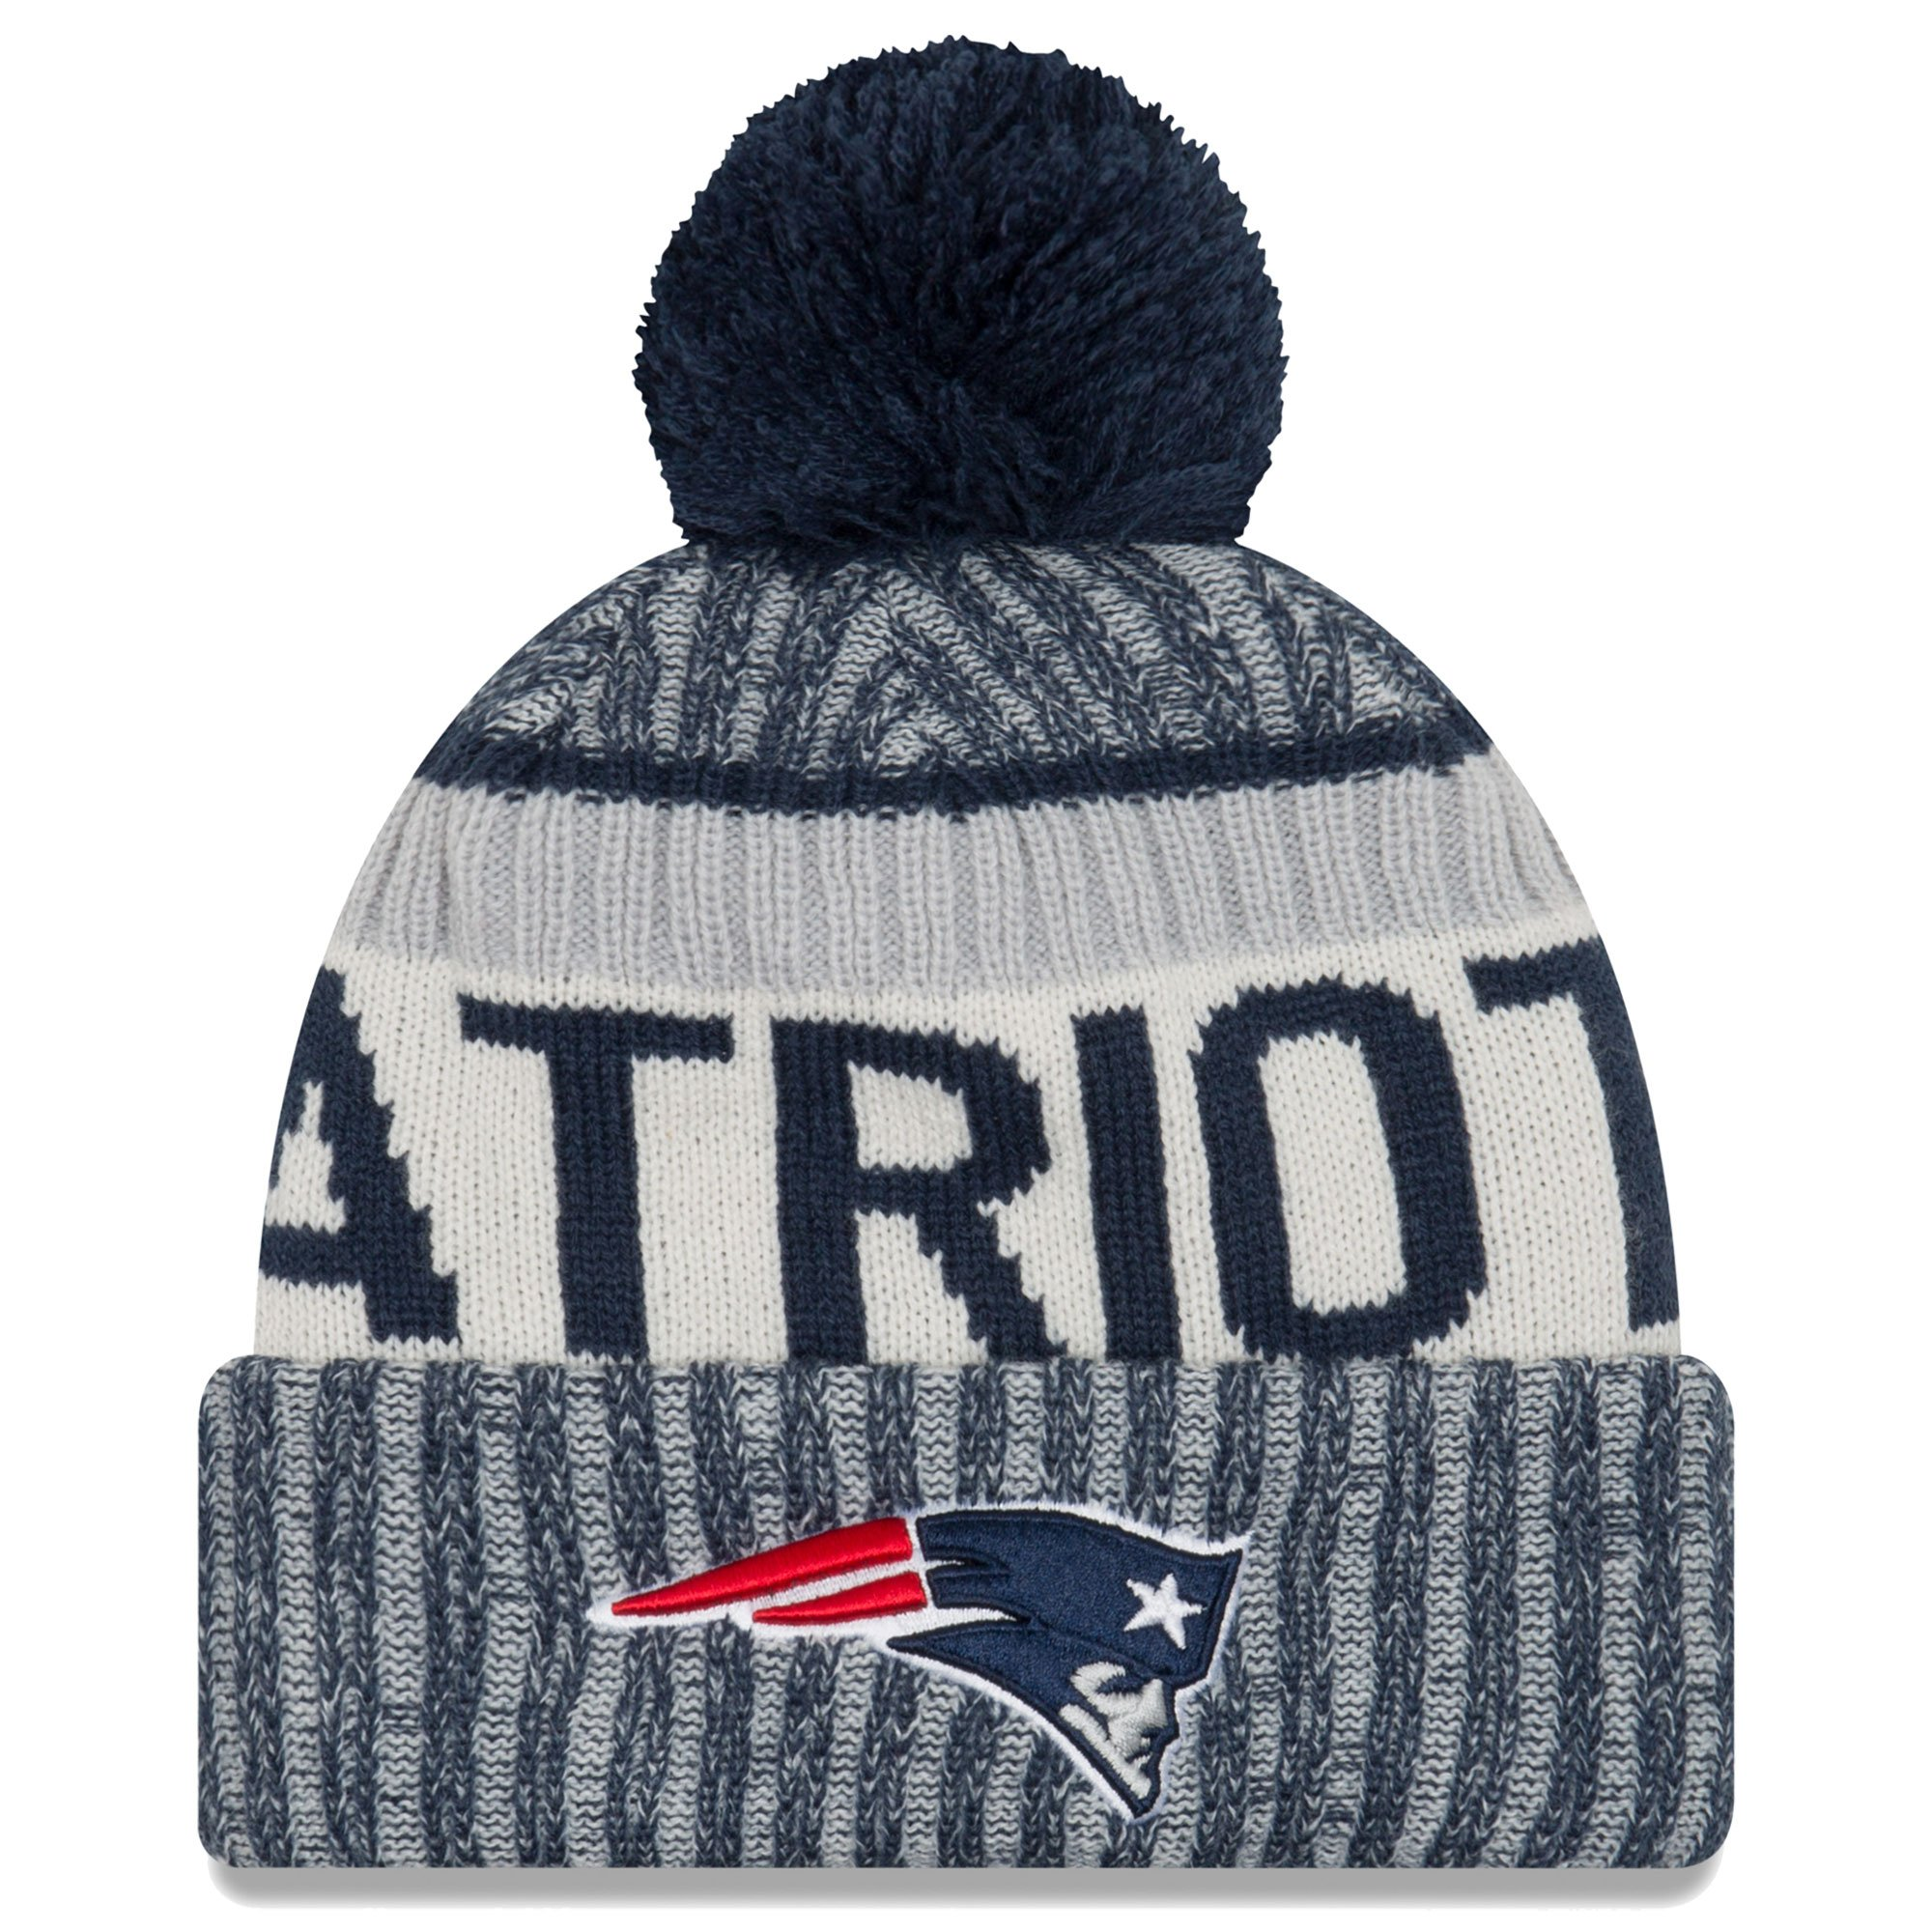 738a0530d9348 Get Quotations · New England Patriots Blue Sport Hat Knit Beanie Jersey  Apparel